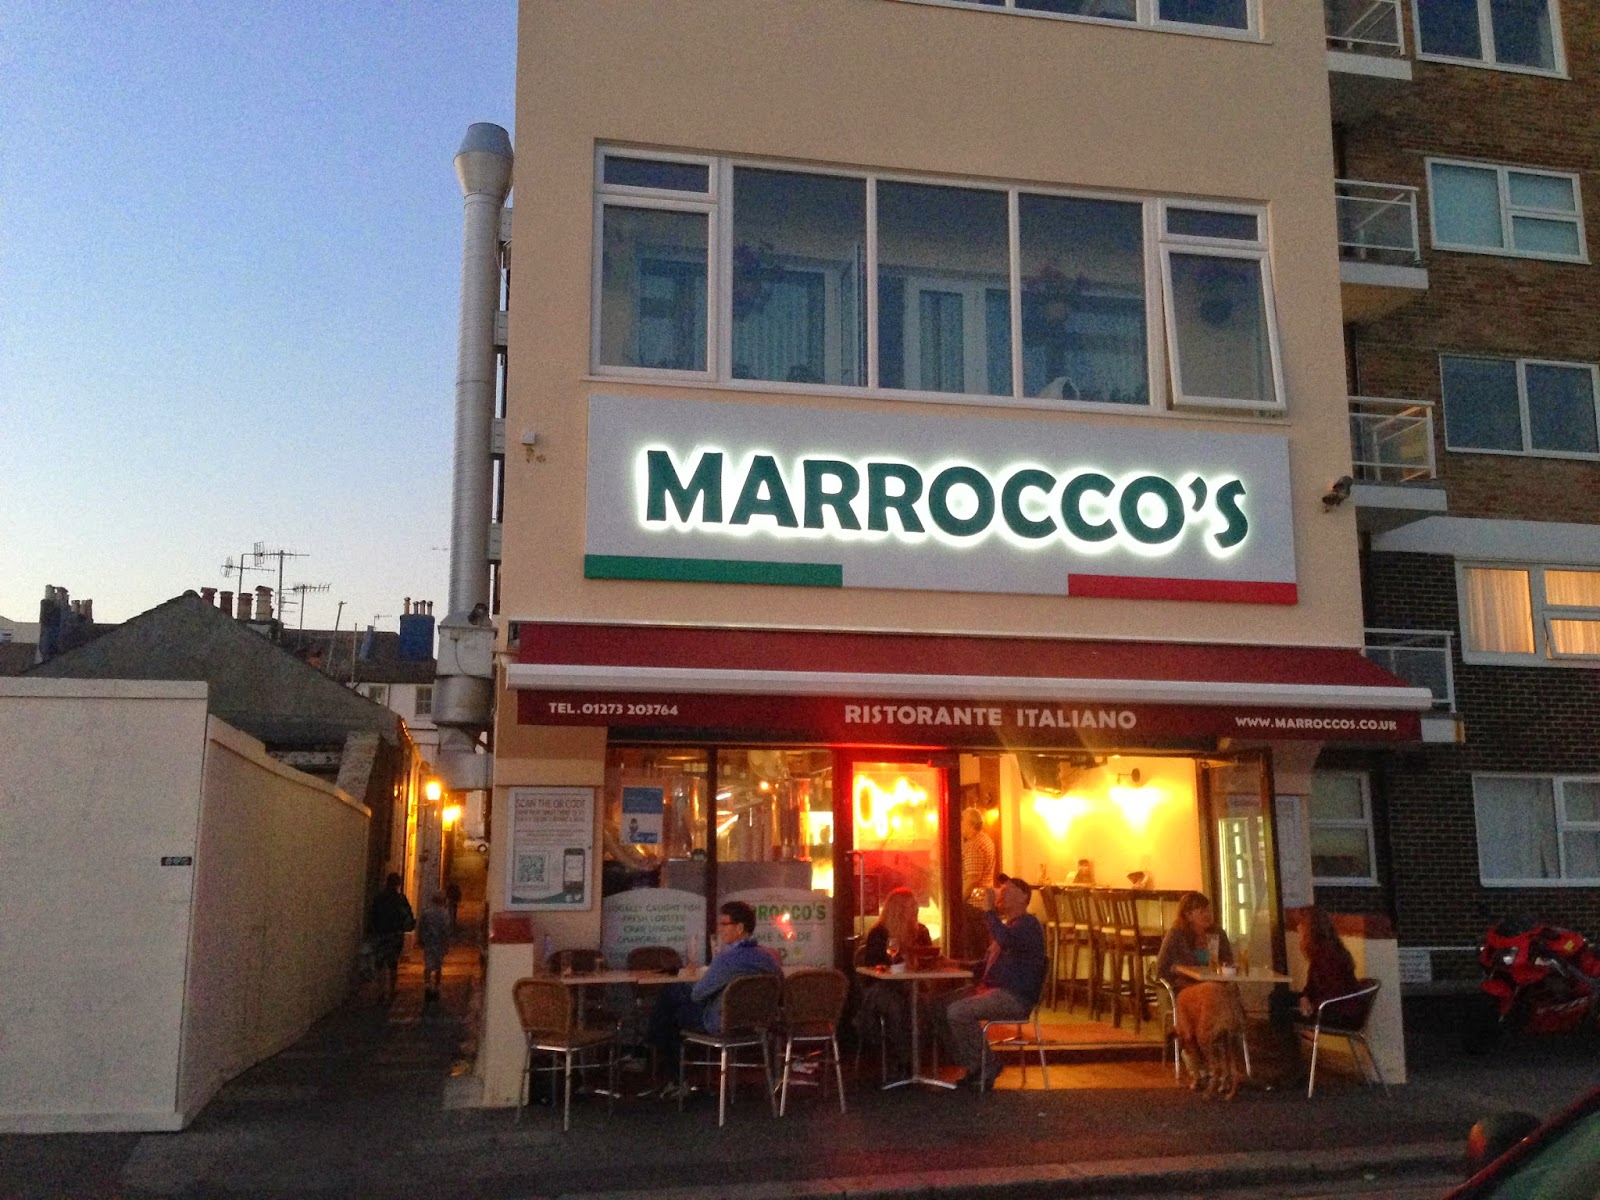 Marrocco's in Brighton and Hove